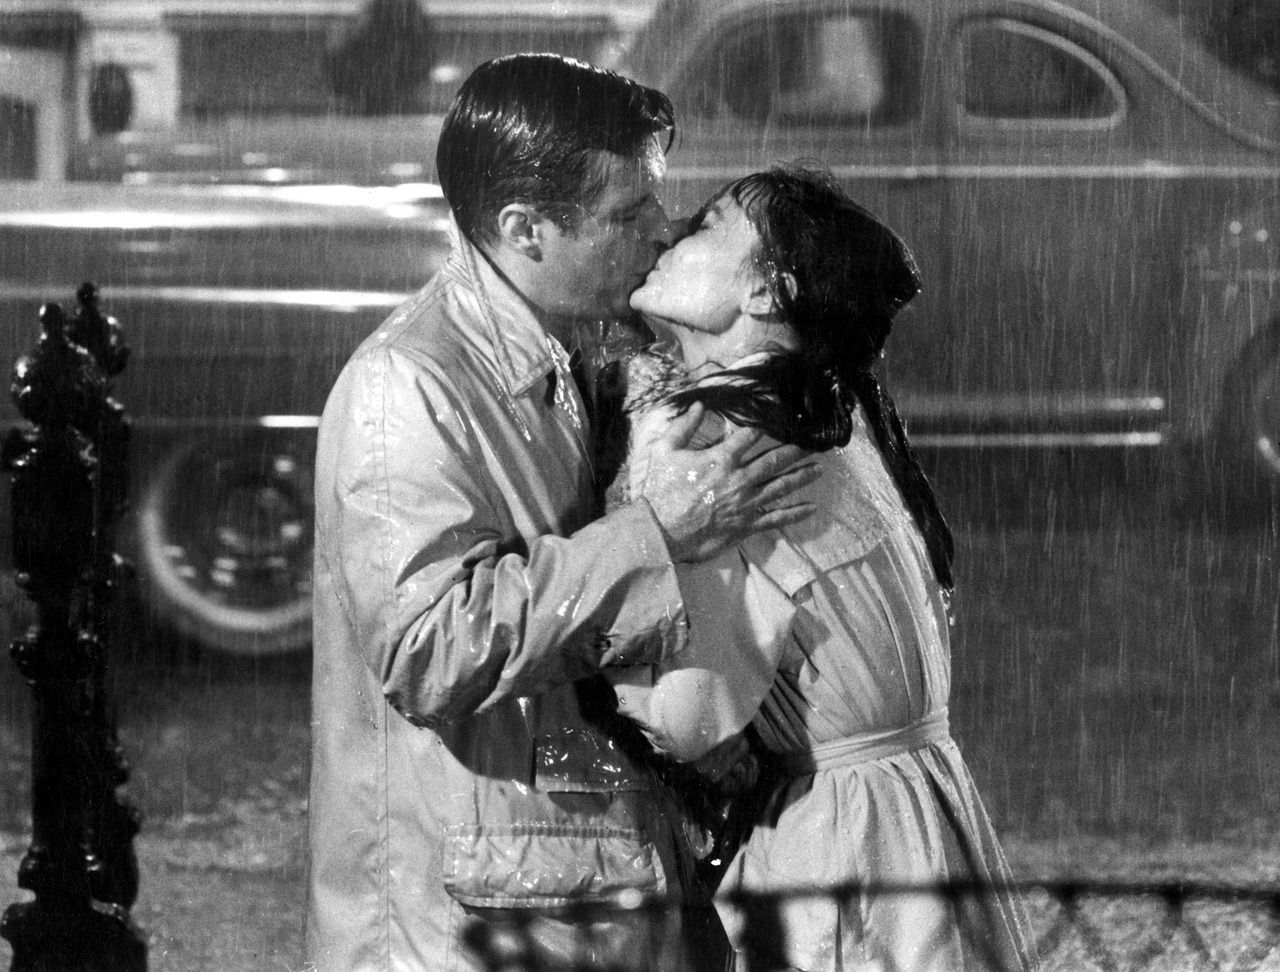 Audrey Hepburn and George Peppard in the 1961 film Breakfast at Tiffany's.